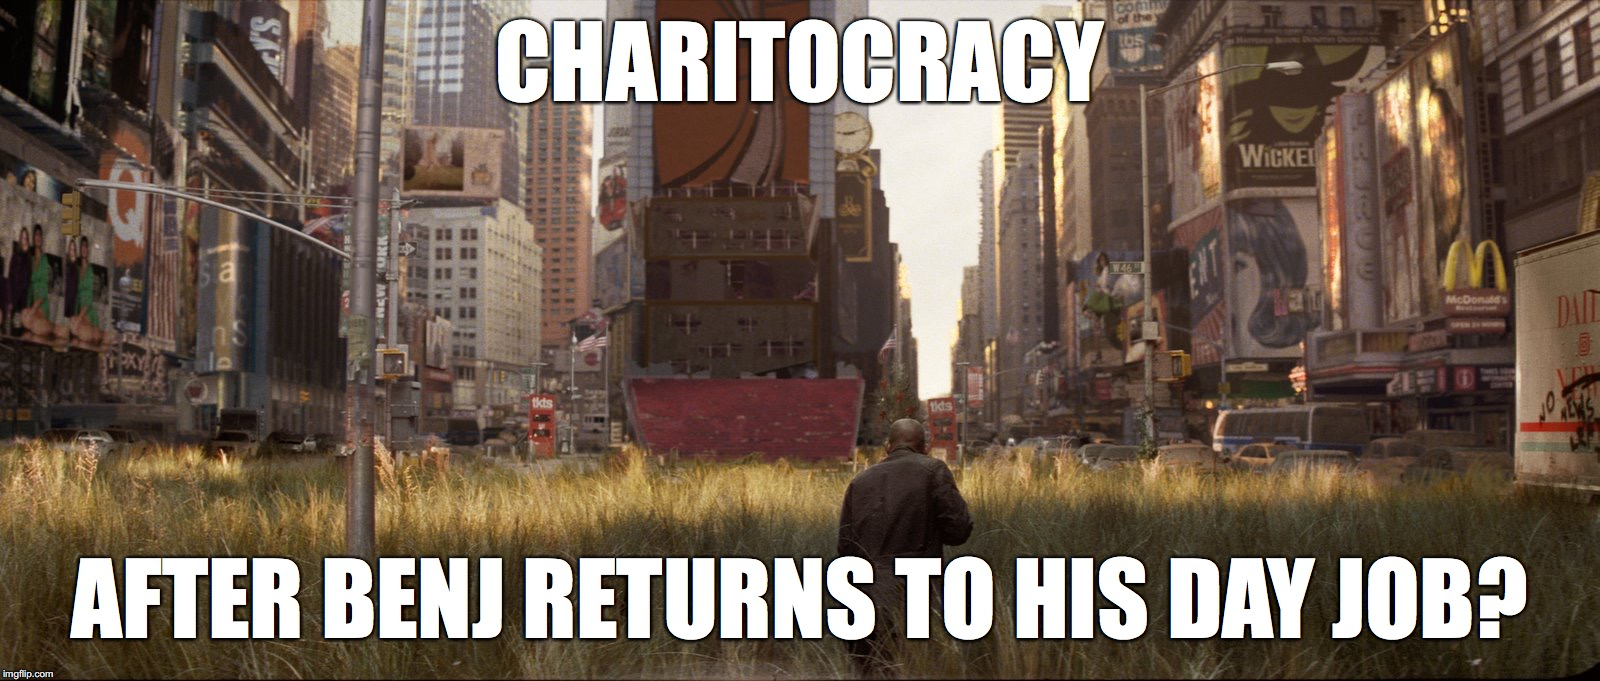 Charitocracy after Benj returns to his day job?